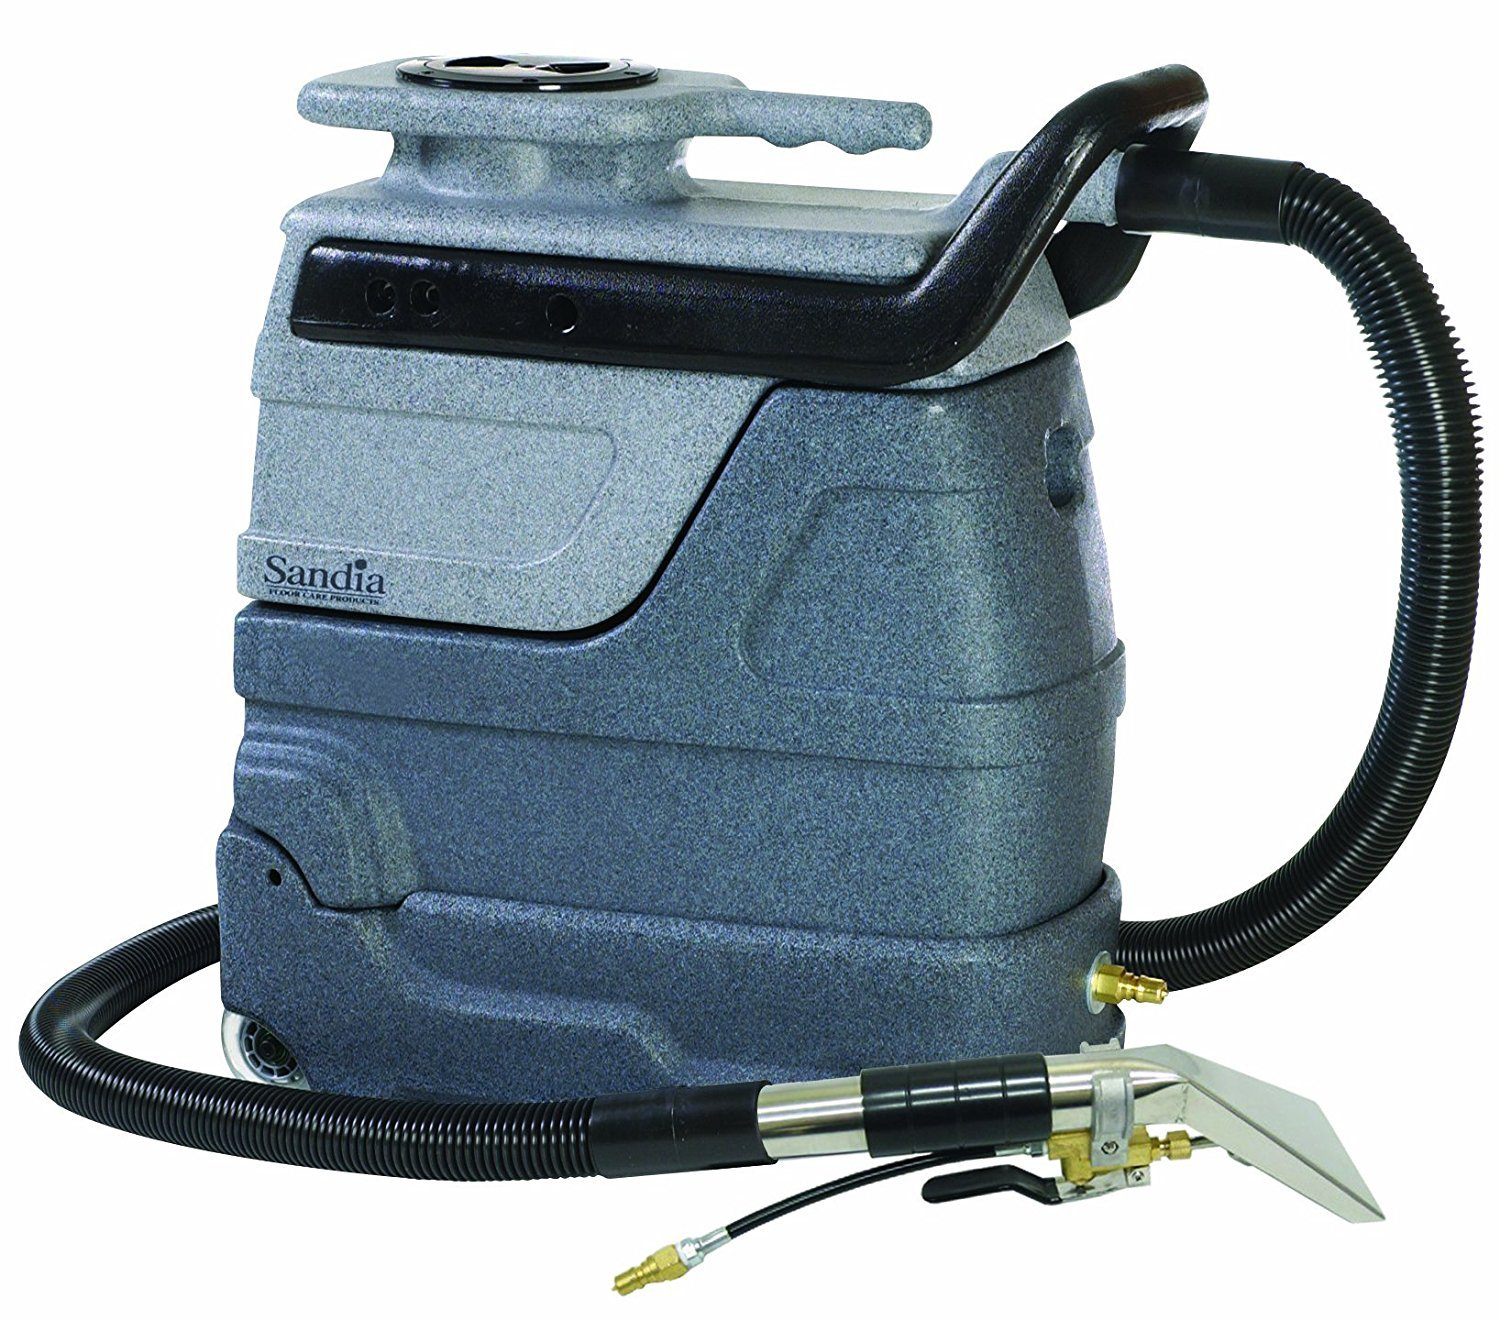 """Sandia 50-4000 Spot-Xtract 3-Gallon Spot Extractor Heater, 15' Hoses, 4"""" Stainless Steel Hand Tool, 55 psi Pump, 100 CFM, 804W, 2-Stage Motor up to 200 Degree F Heater"""